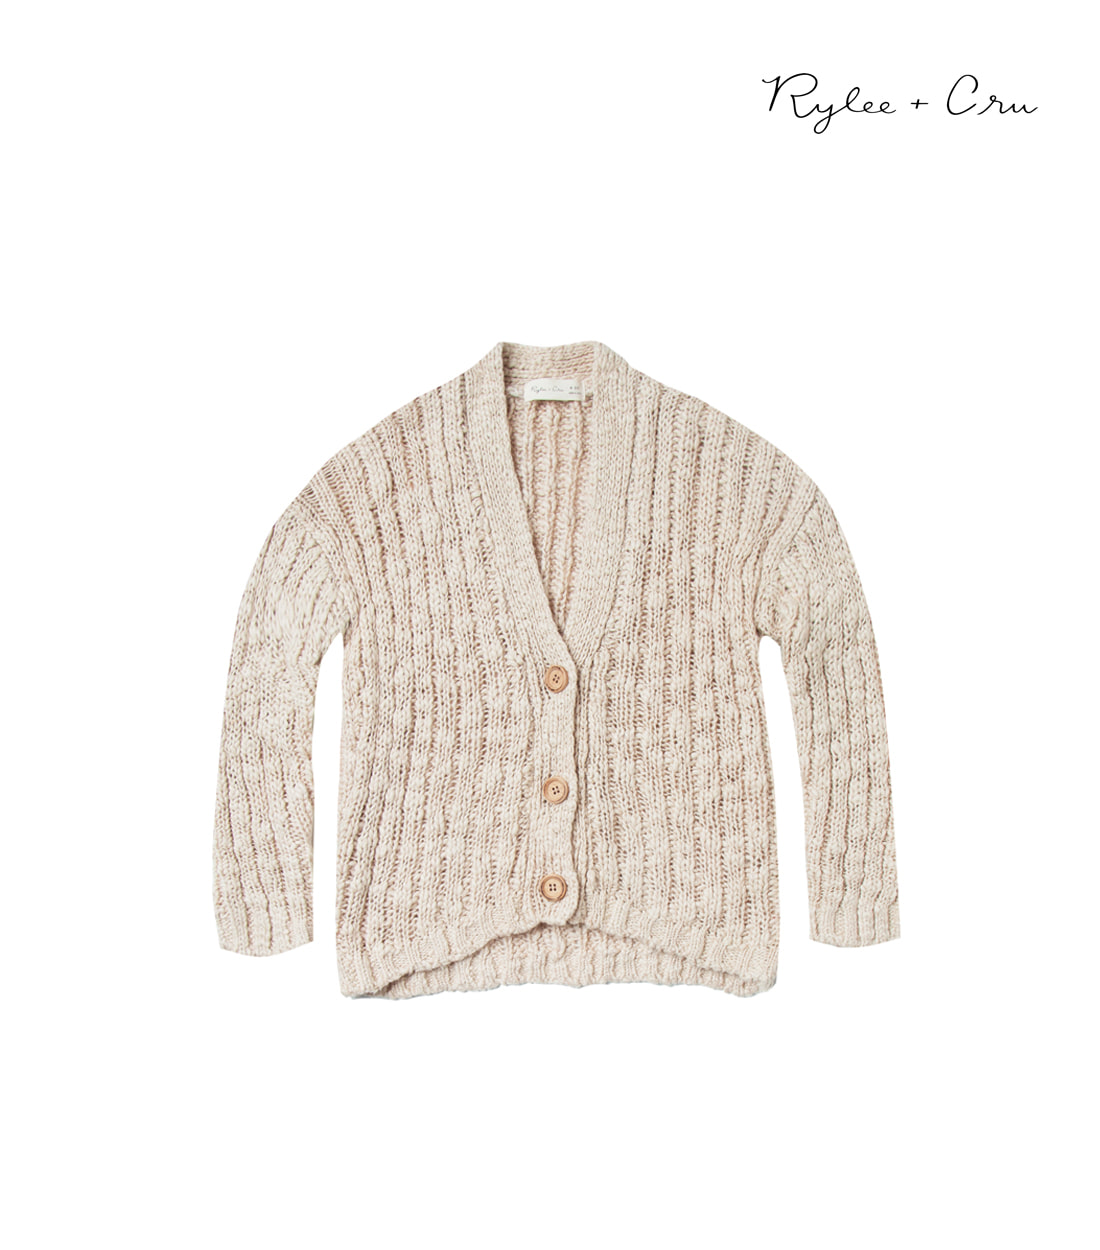 라일리앤크루 BIRDY CARDIGAN / WHEAT